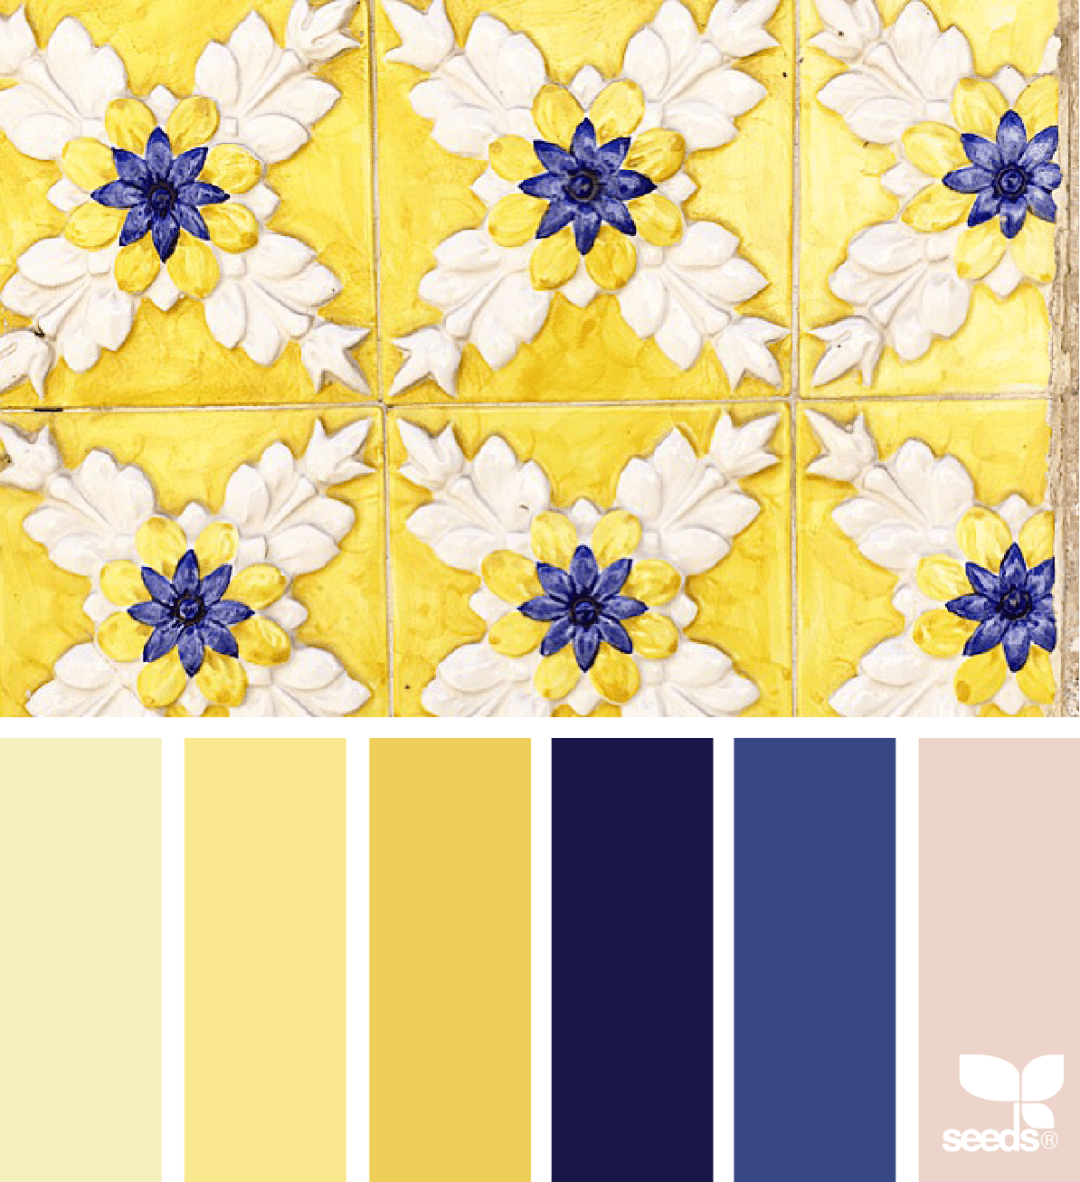 Design seed's Color Tiled for blue and yellow colour combination - 35 ideas for blue wall colour in home decoration | Aliz's Wonderland